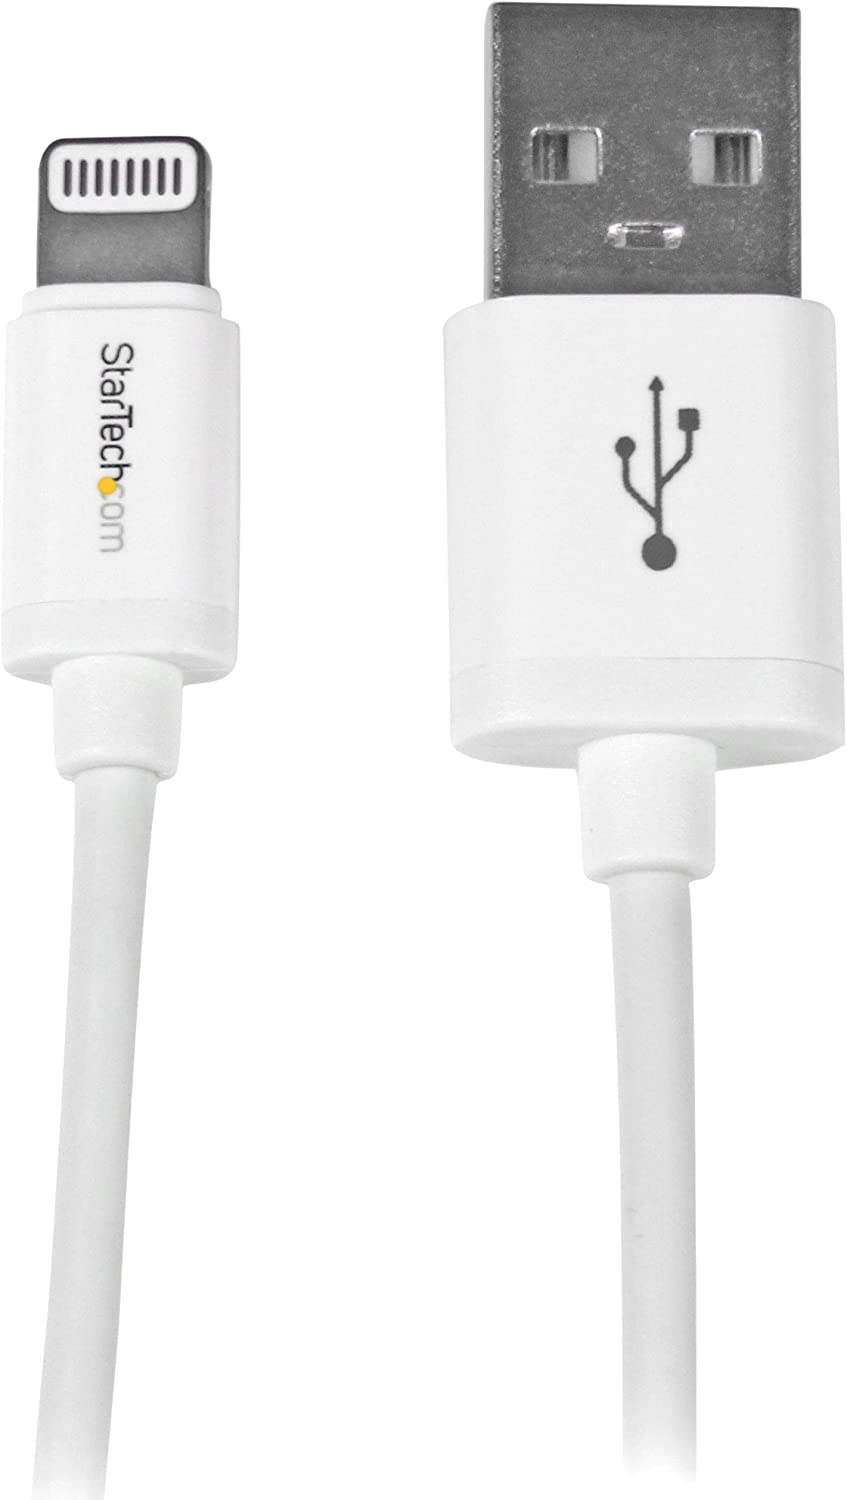 StarTech.com 0.3m (11in) Short White Apple 8-pin Lightning Connector to USB Cable for iPhone/iPod/iPad - Charge and Sync Cable (USBLT30CMW)